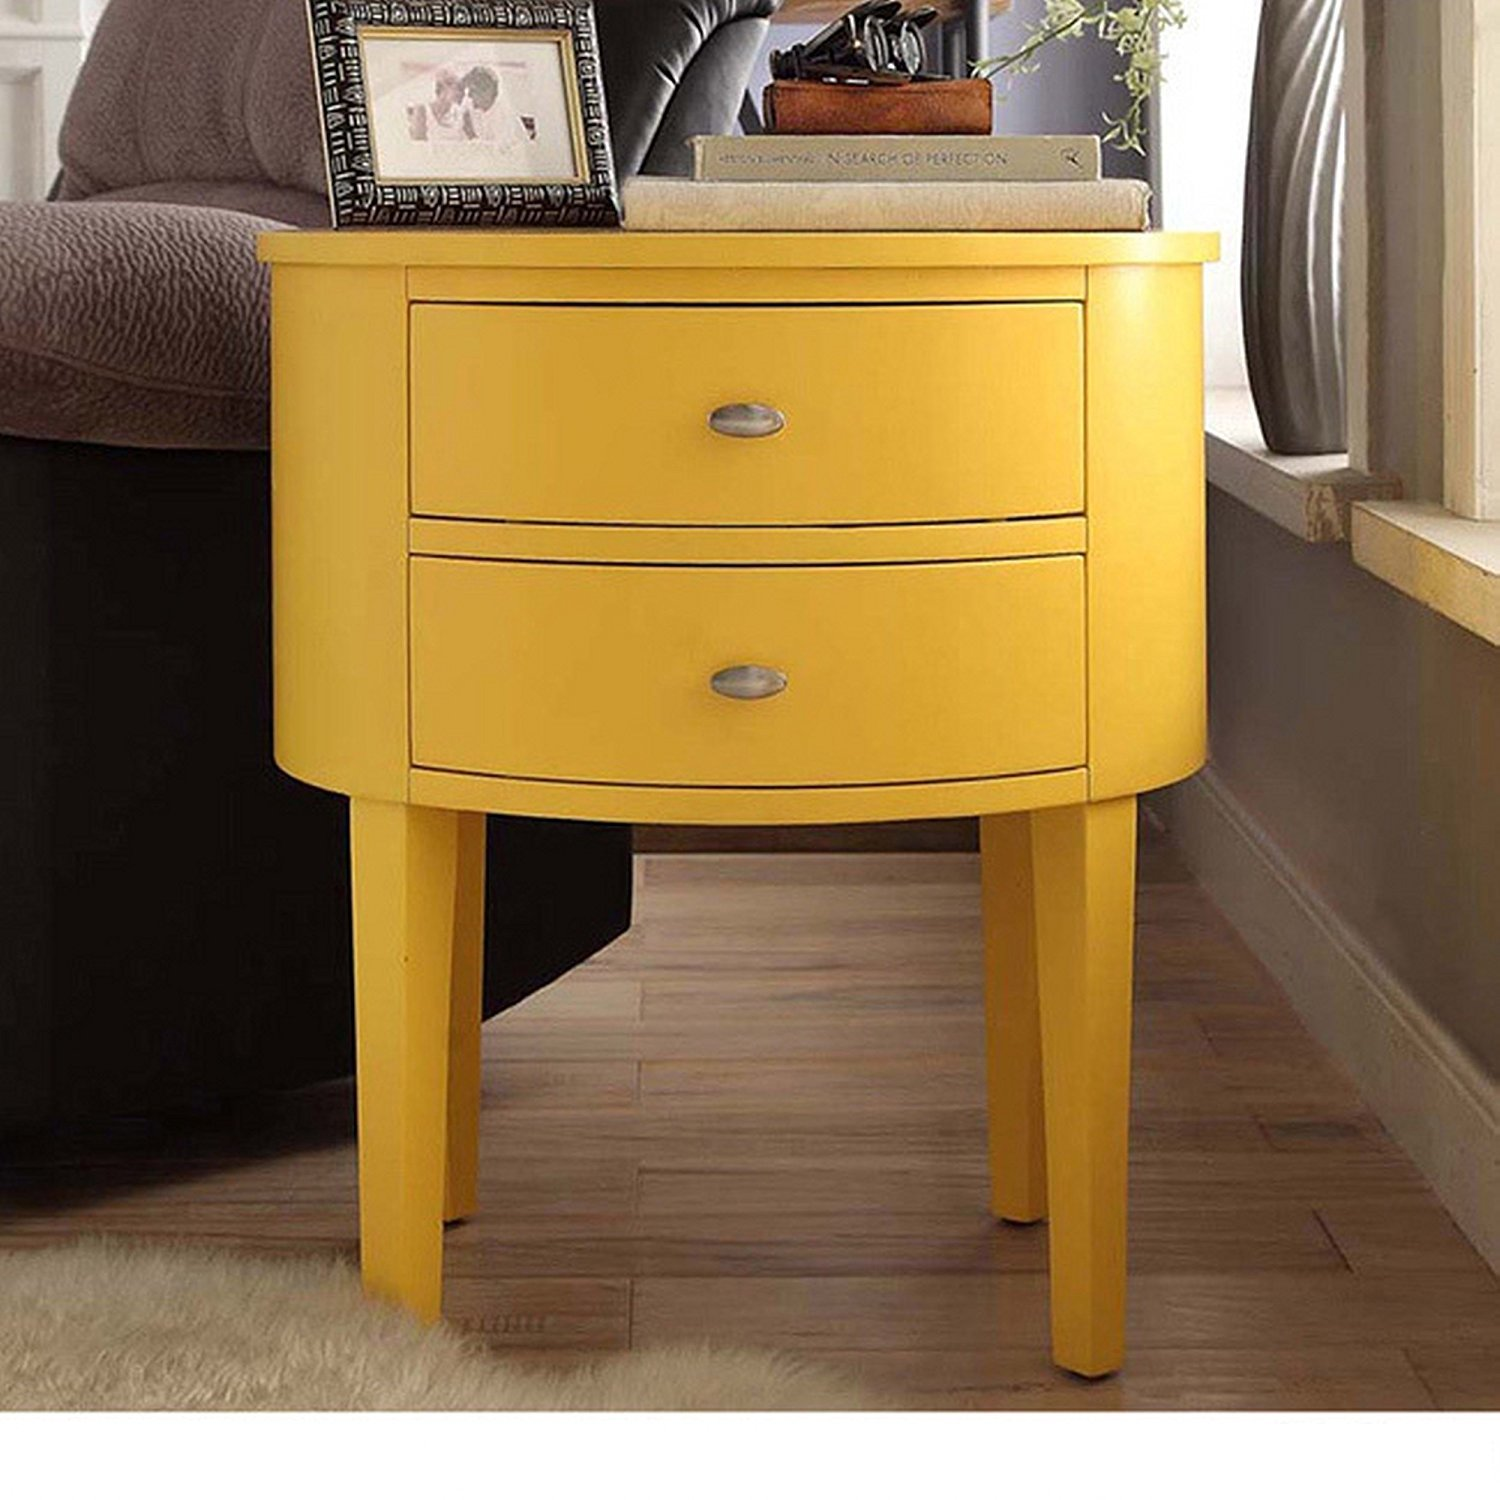 Amazon com modhaus living modern style wood accent nightstand end sofa table console oval shaped with 2 kitchen dining